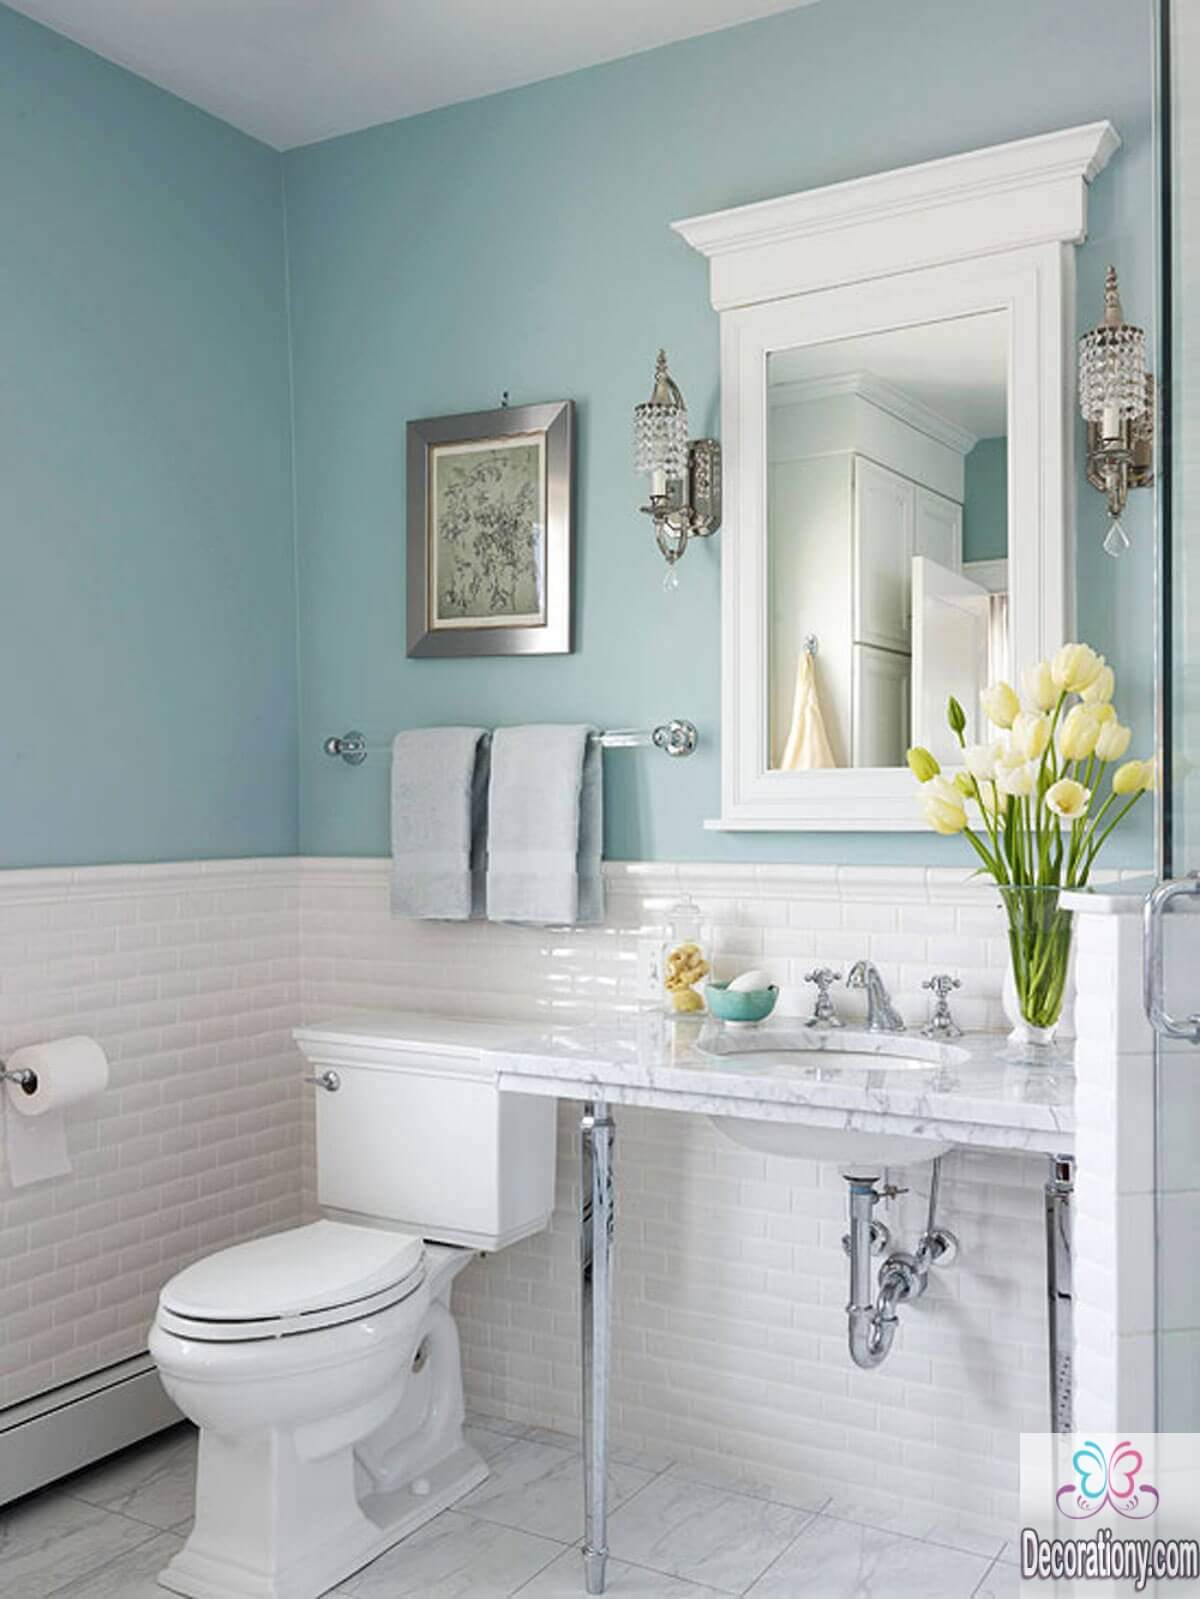 10 affordable colors for small bathrooms decoration y for In design bathrooms